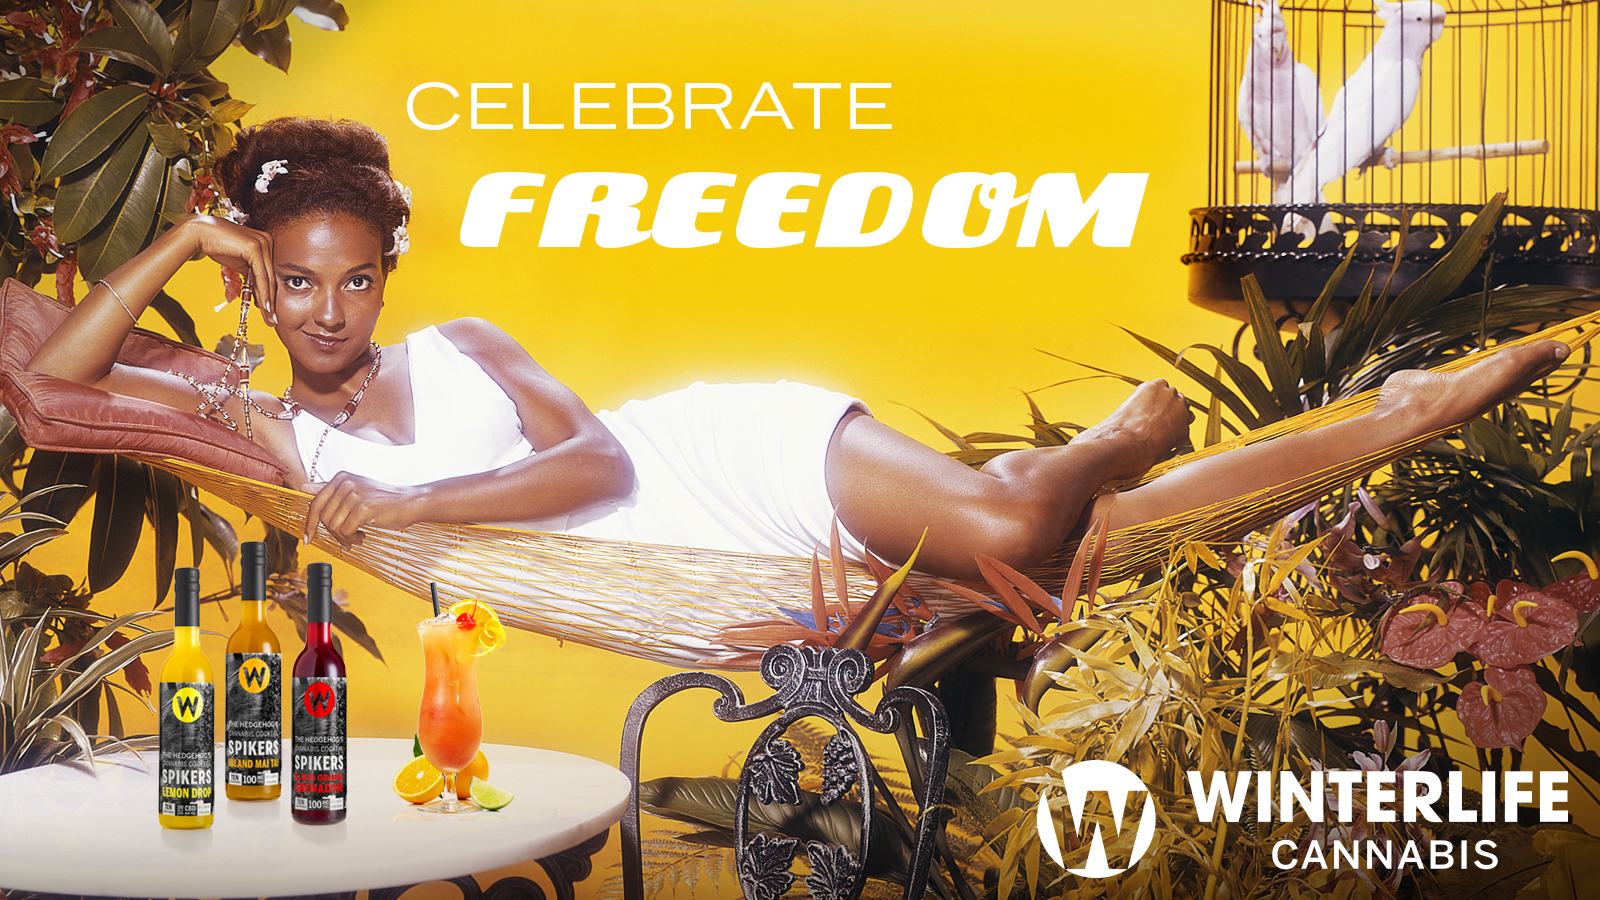 celebratefreedomretro_websiteslide.jpg